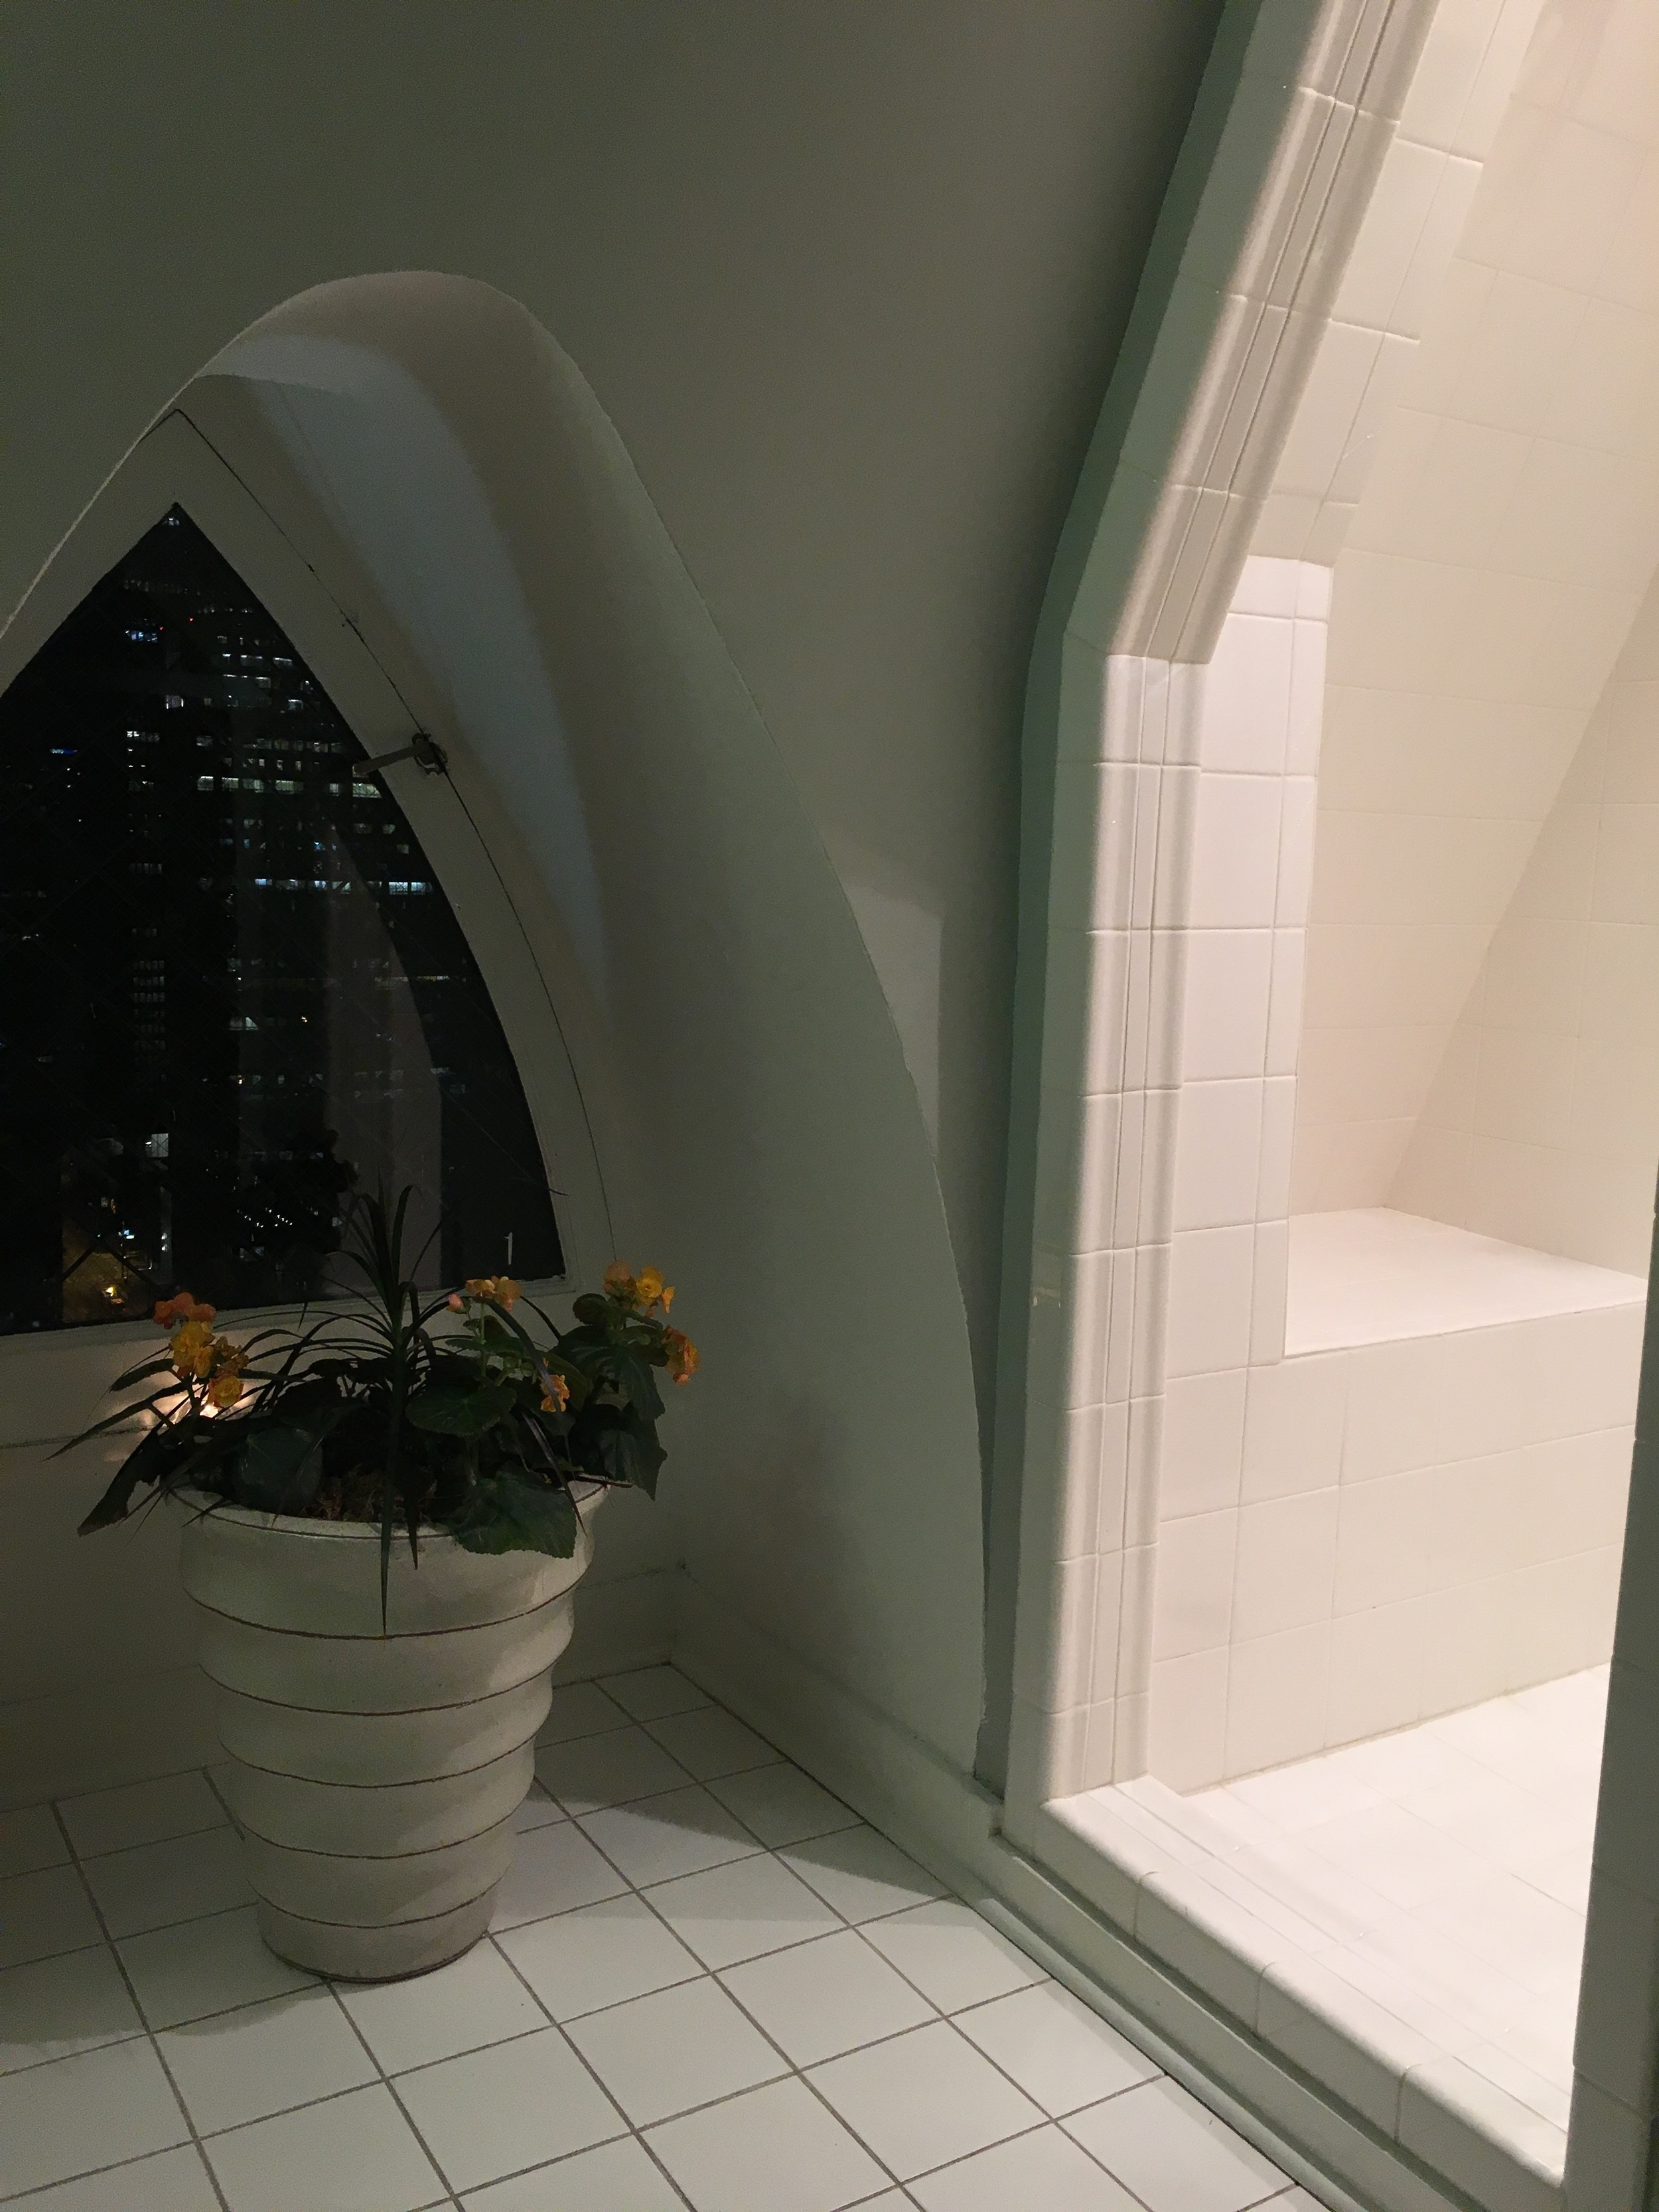 Even the bathroom has a view.